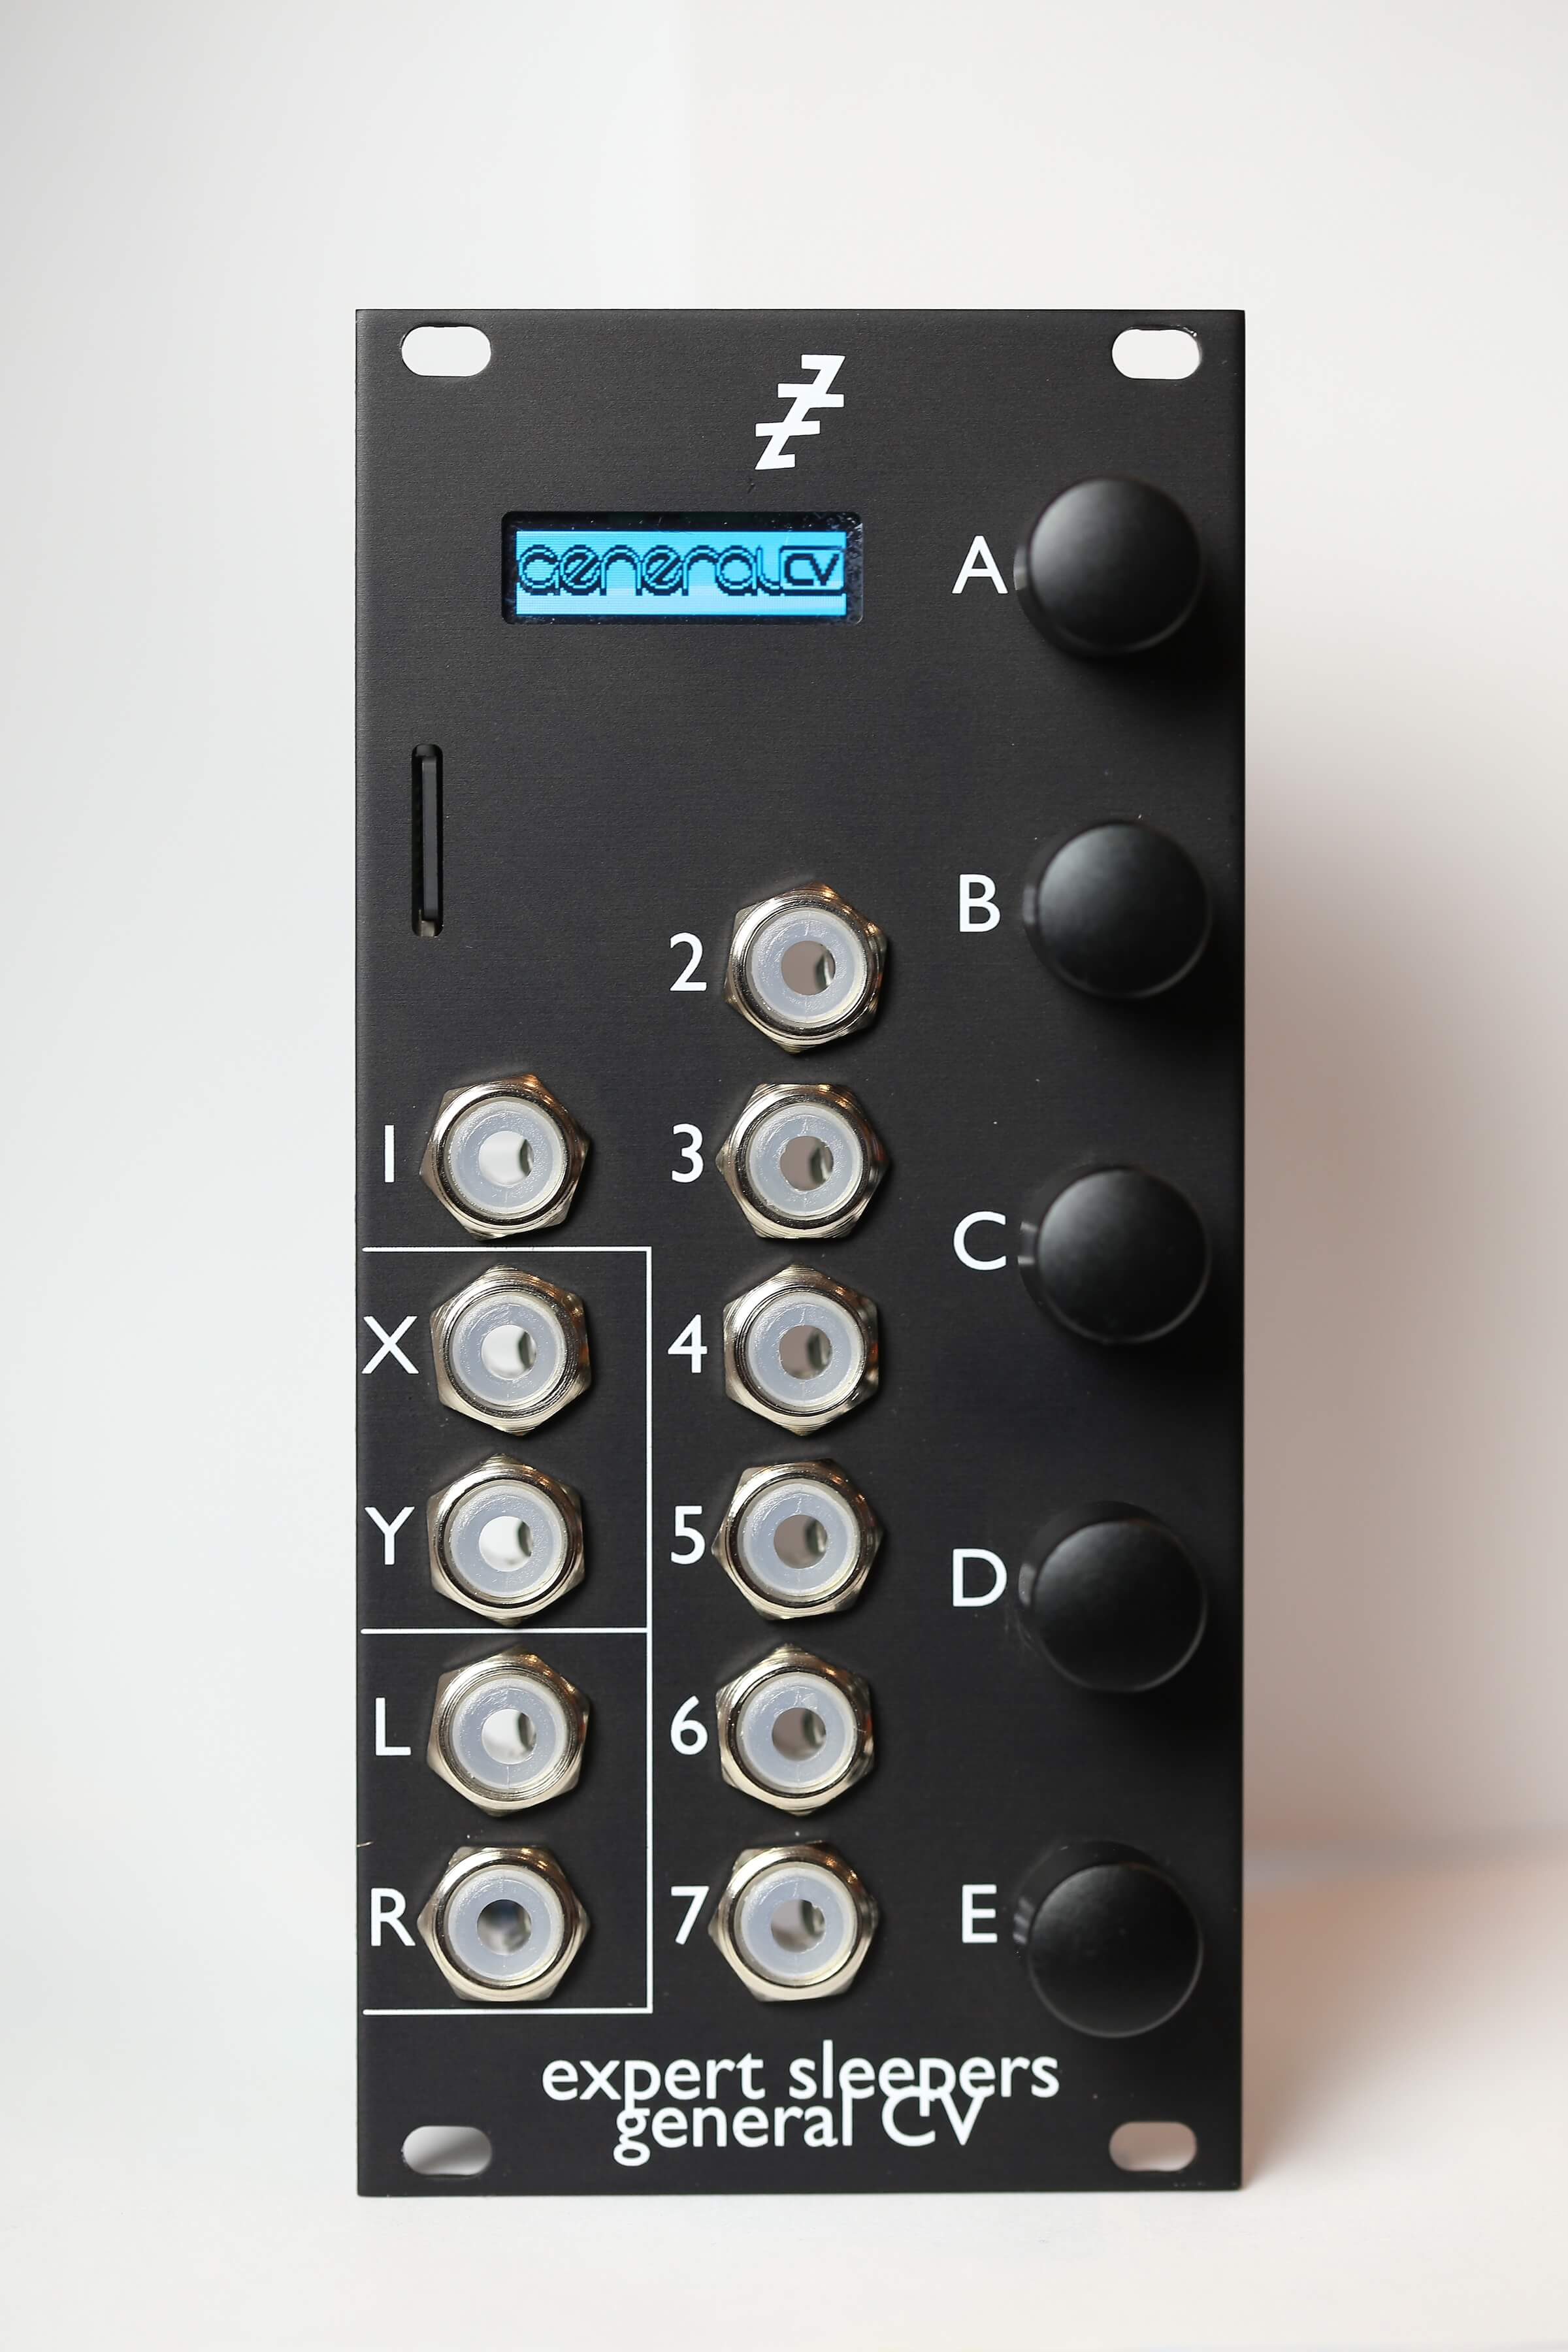 Expert Sleepers General CV General MIDI synthesizer Eurorack